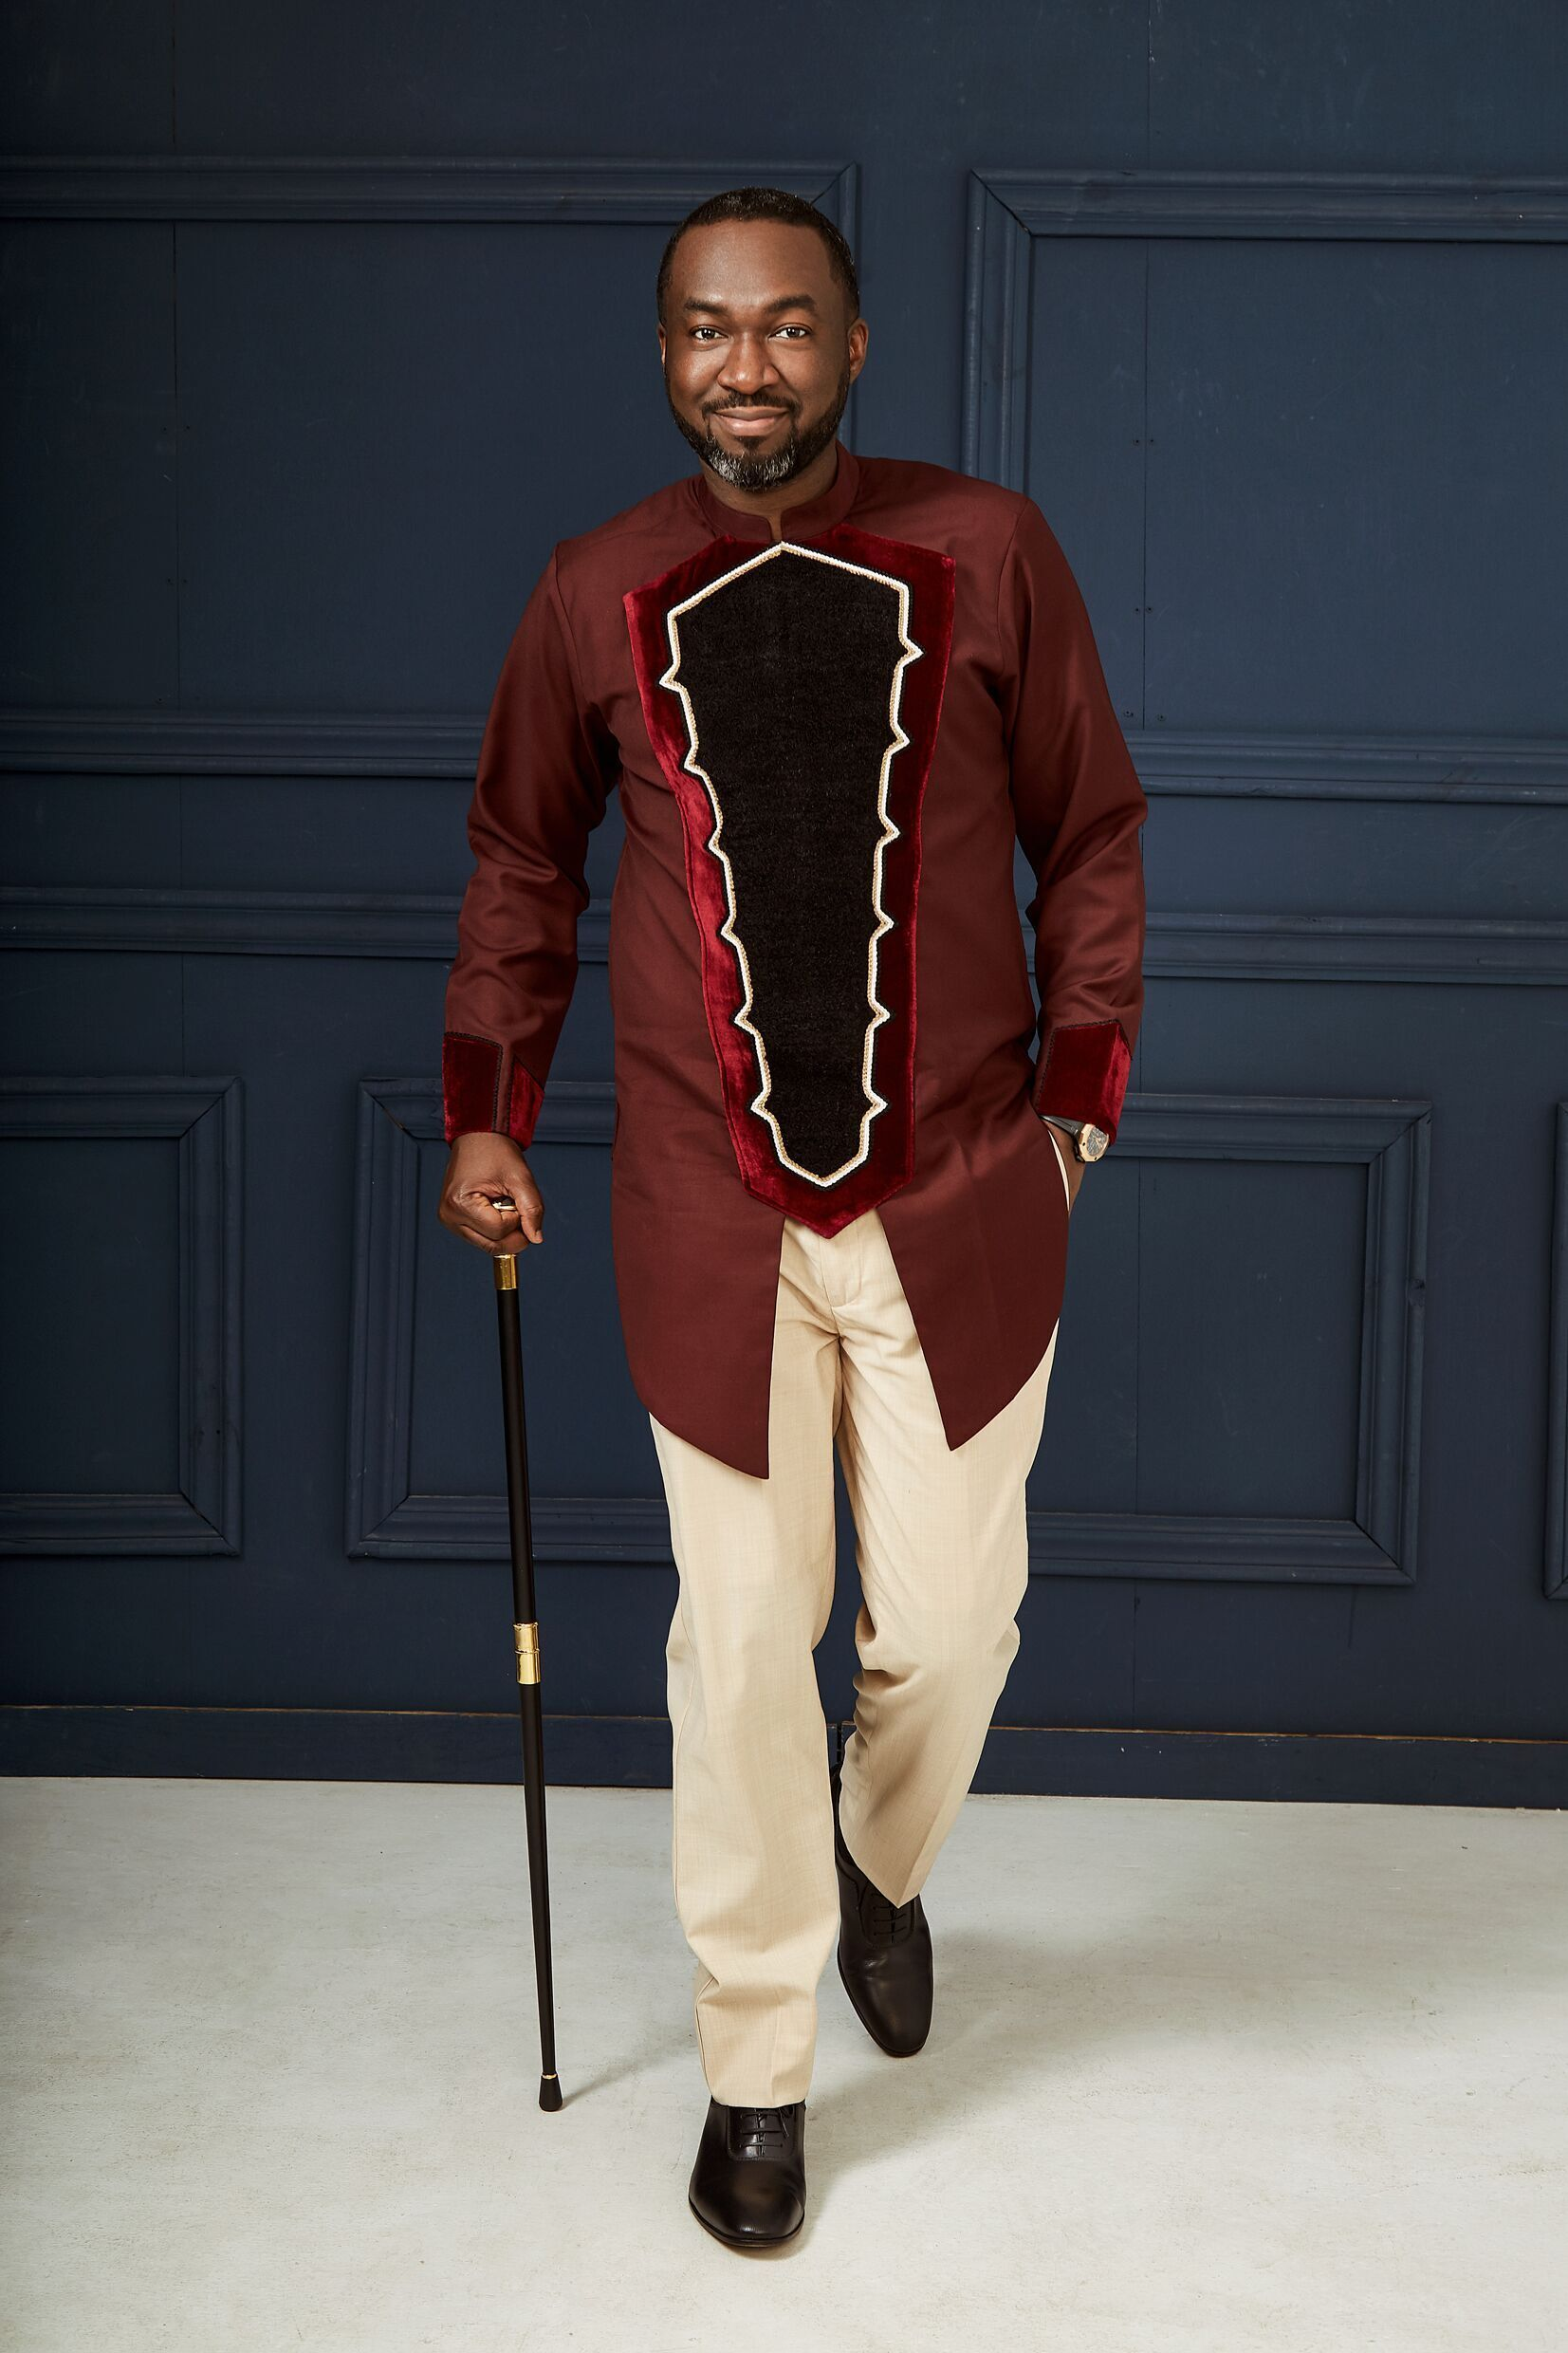 Chukwuka Monye for Guardian Life Magazine, July 21, 2019